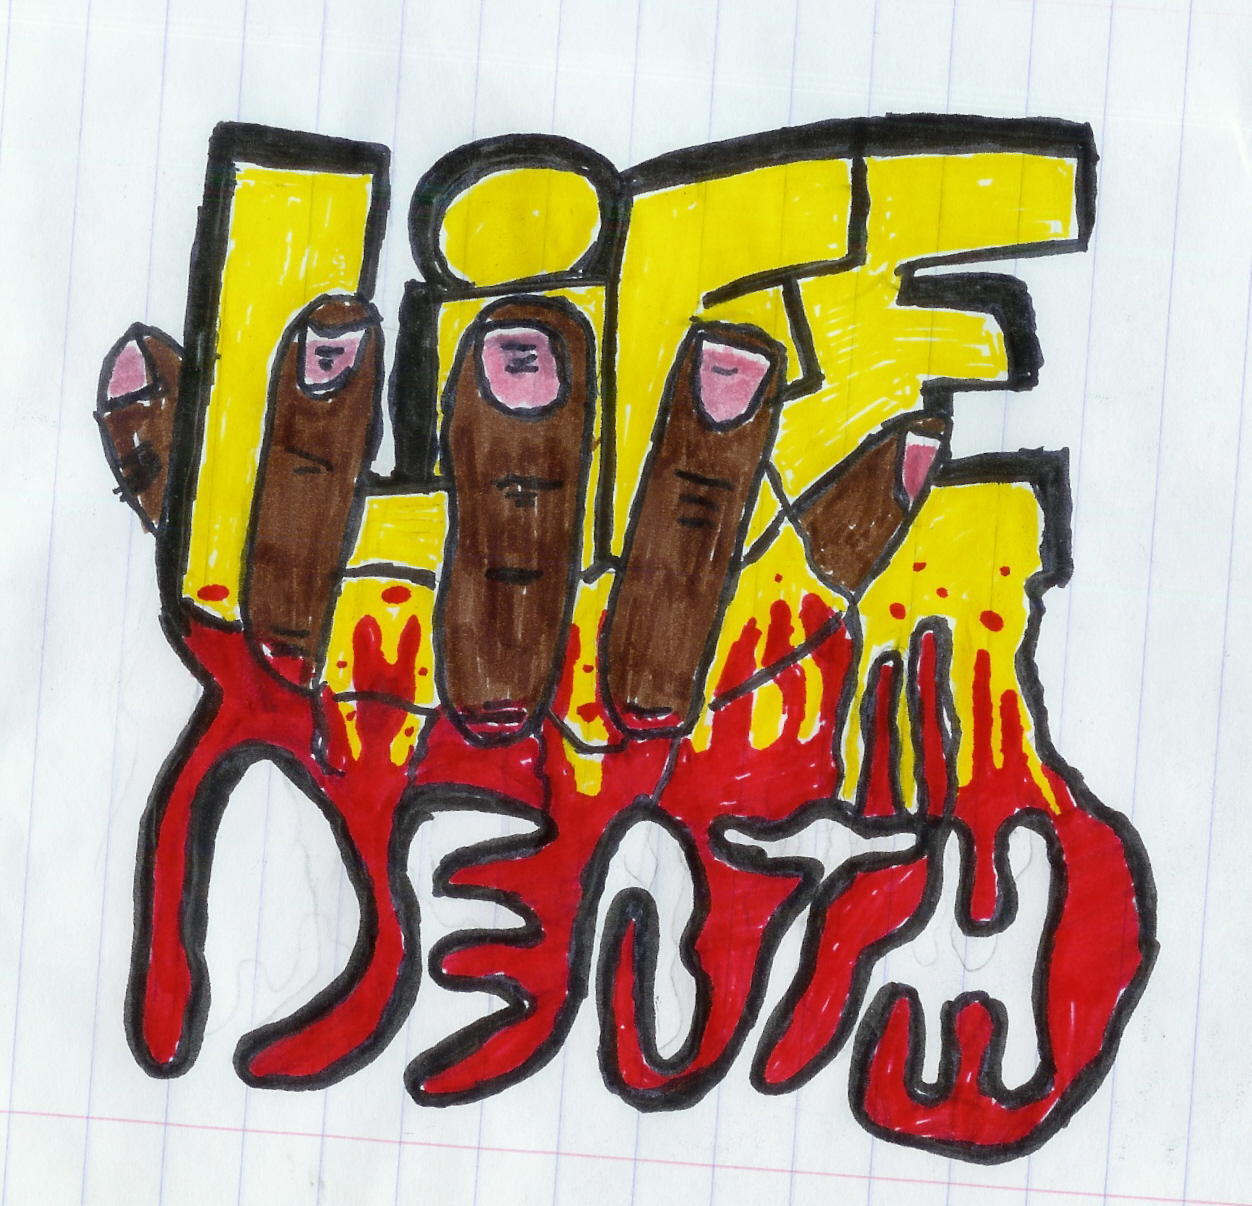 Life/Death in your own hands